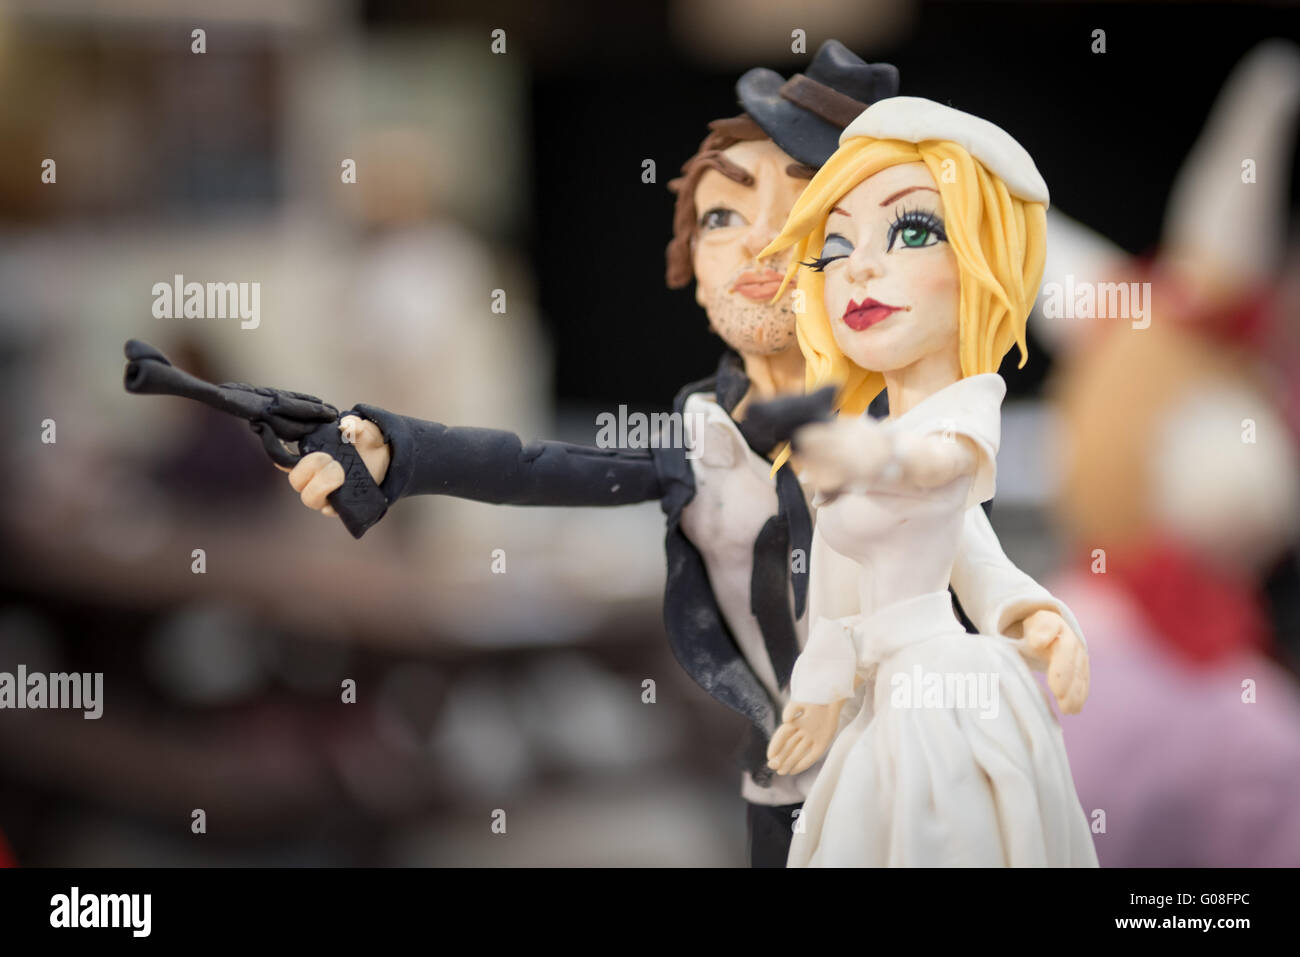 Getting Hitched Outlaws Bonnie and Clyde Wedding Cake  |Bonnie And Clyde Cakes